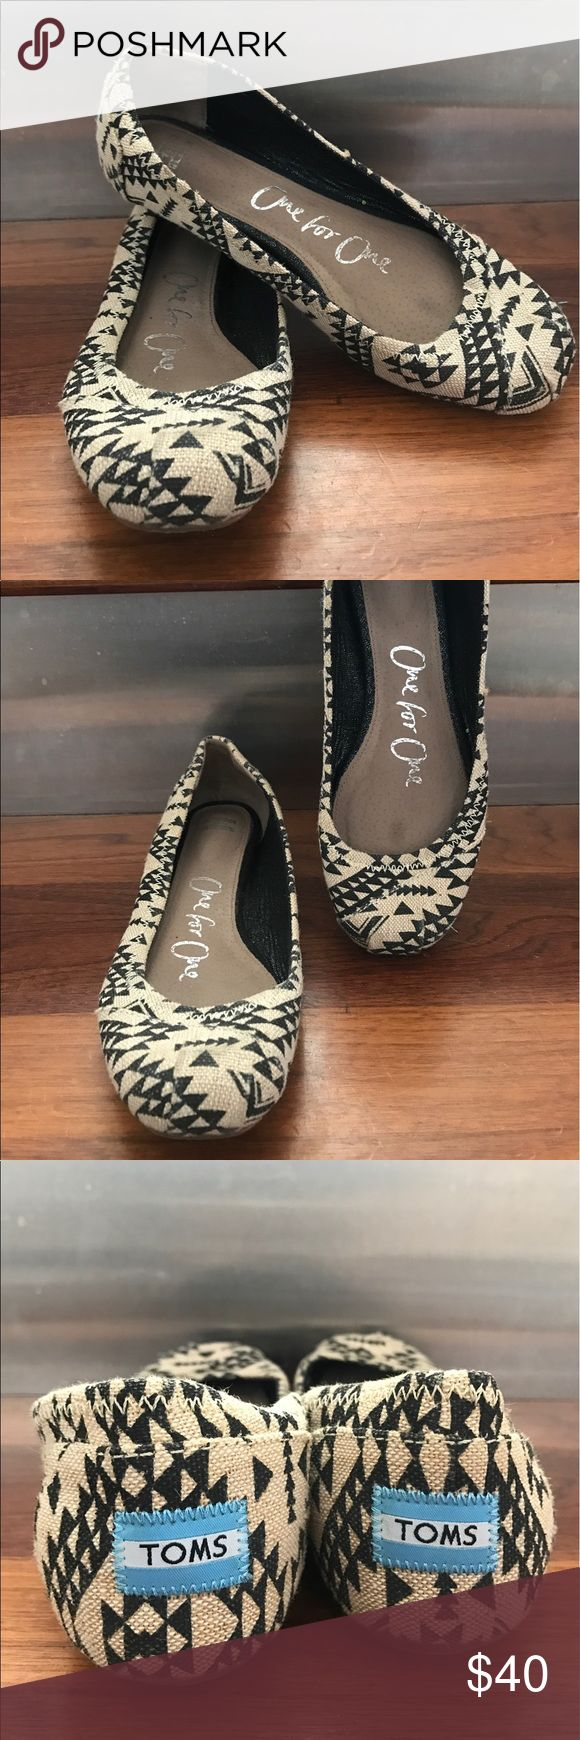 TOMS Ballerina Flat Burlap tribal design. Worn only a handful of times, sole is slightly worn but other than that in great condition. Bundle with other TOMS and save 20%! TOMS Shoes Flats & Loafers